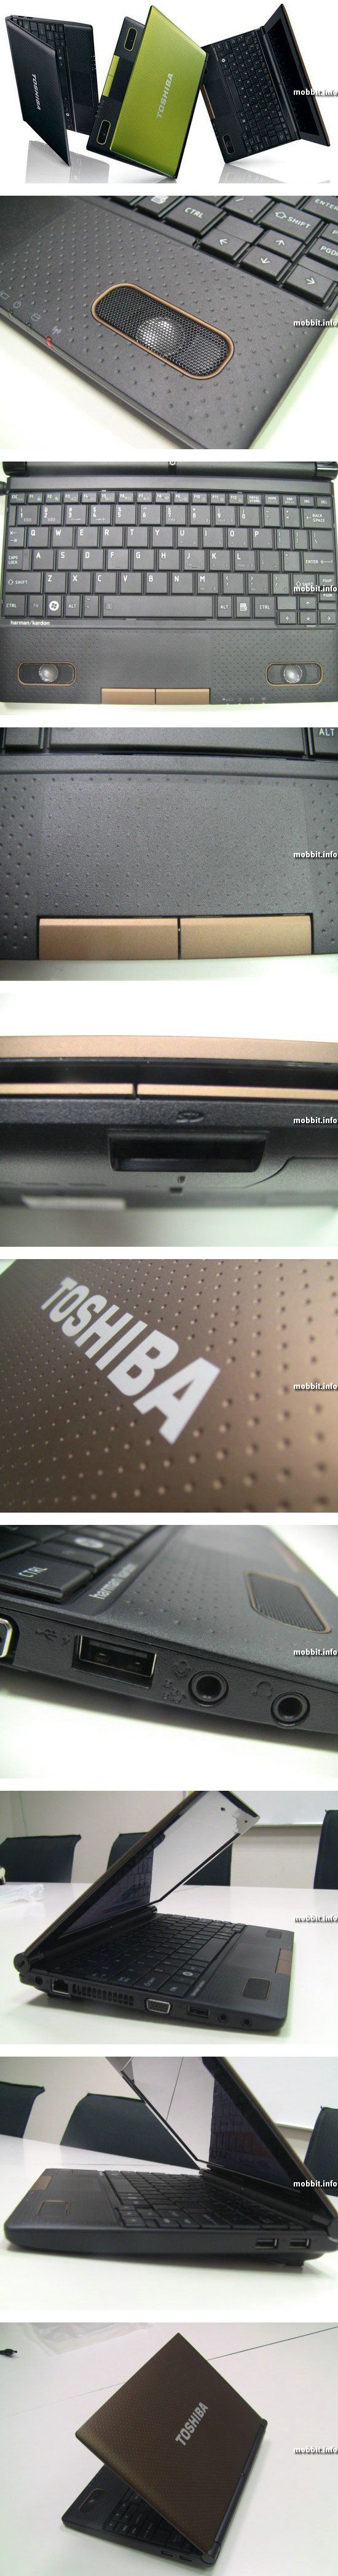 Toshiba mini NB520